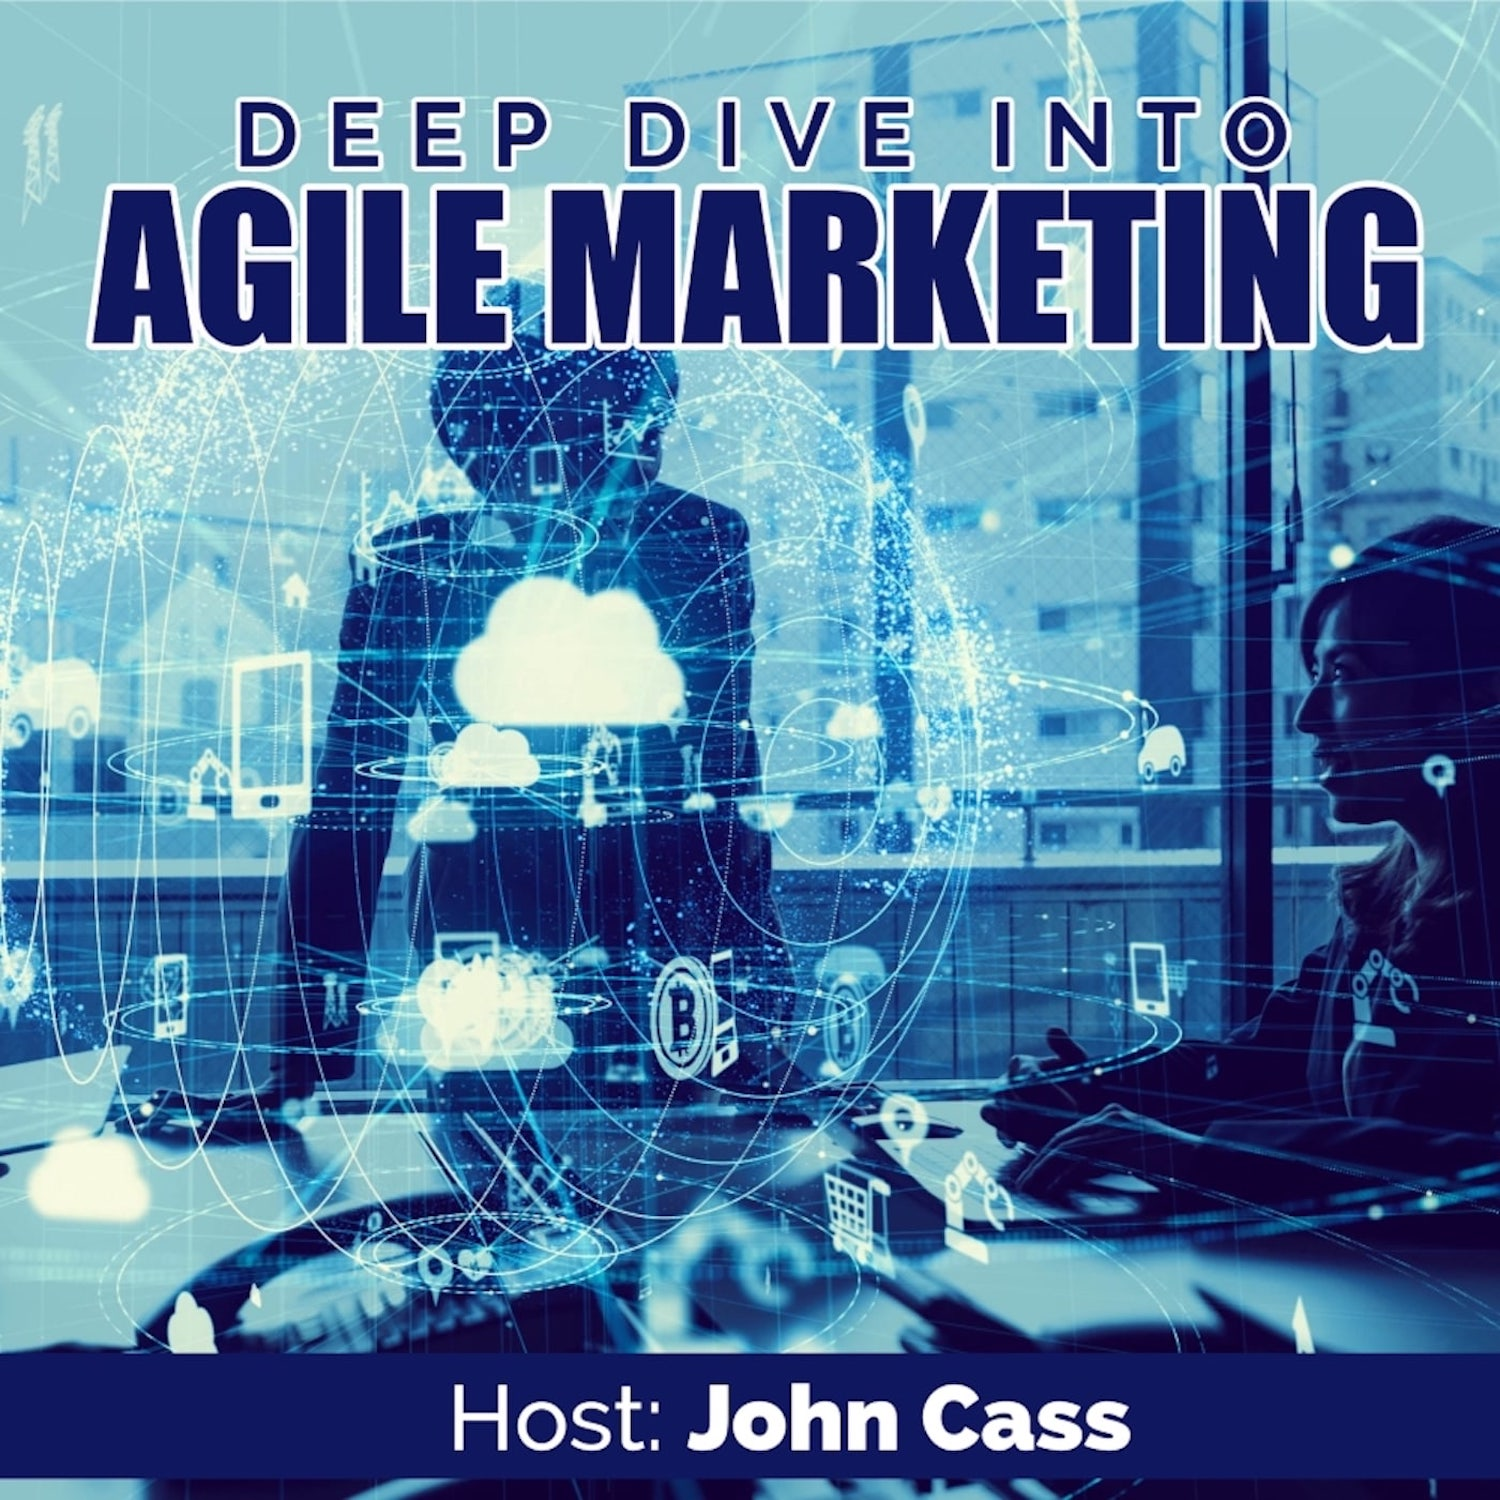 Artwork for podcast Deep Dive into Agile Marketing